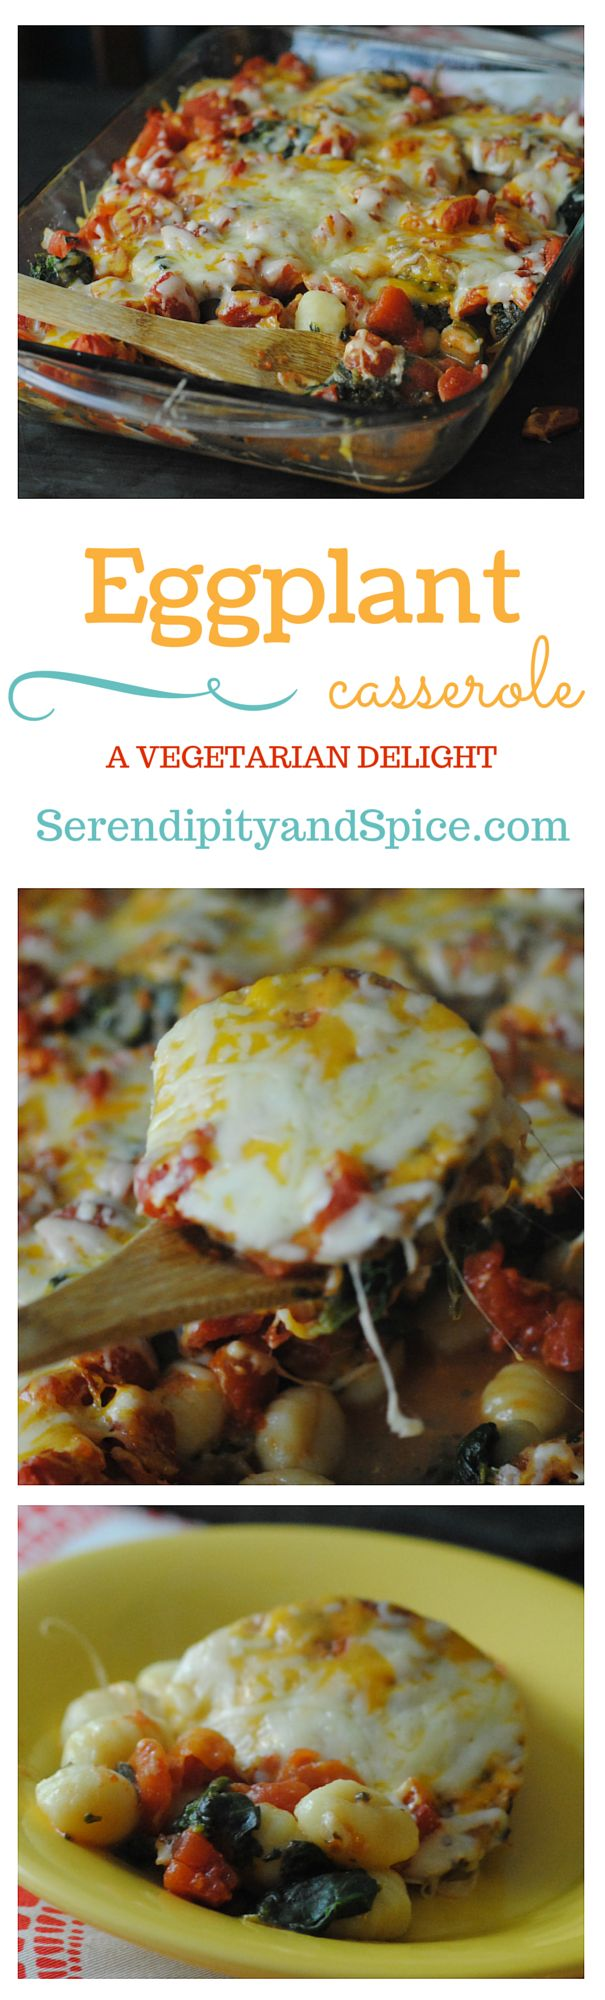 This Eggplant Casserole Recipes is a delicious vegetarian meal that's packed full of flavor! One dish meals are the BEST and this eggplant casserole recipe does not disappoint! ~ http://serendipityandspice.com